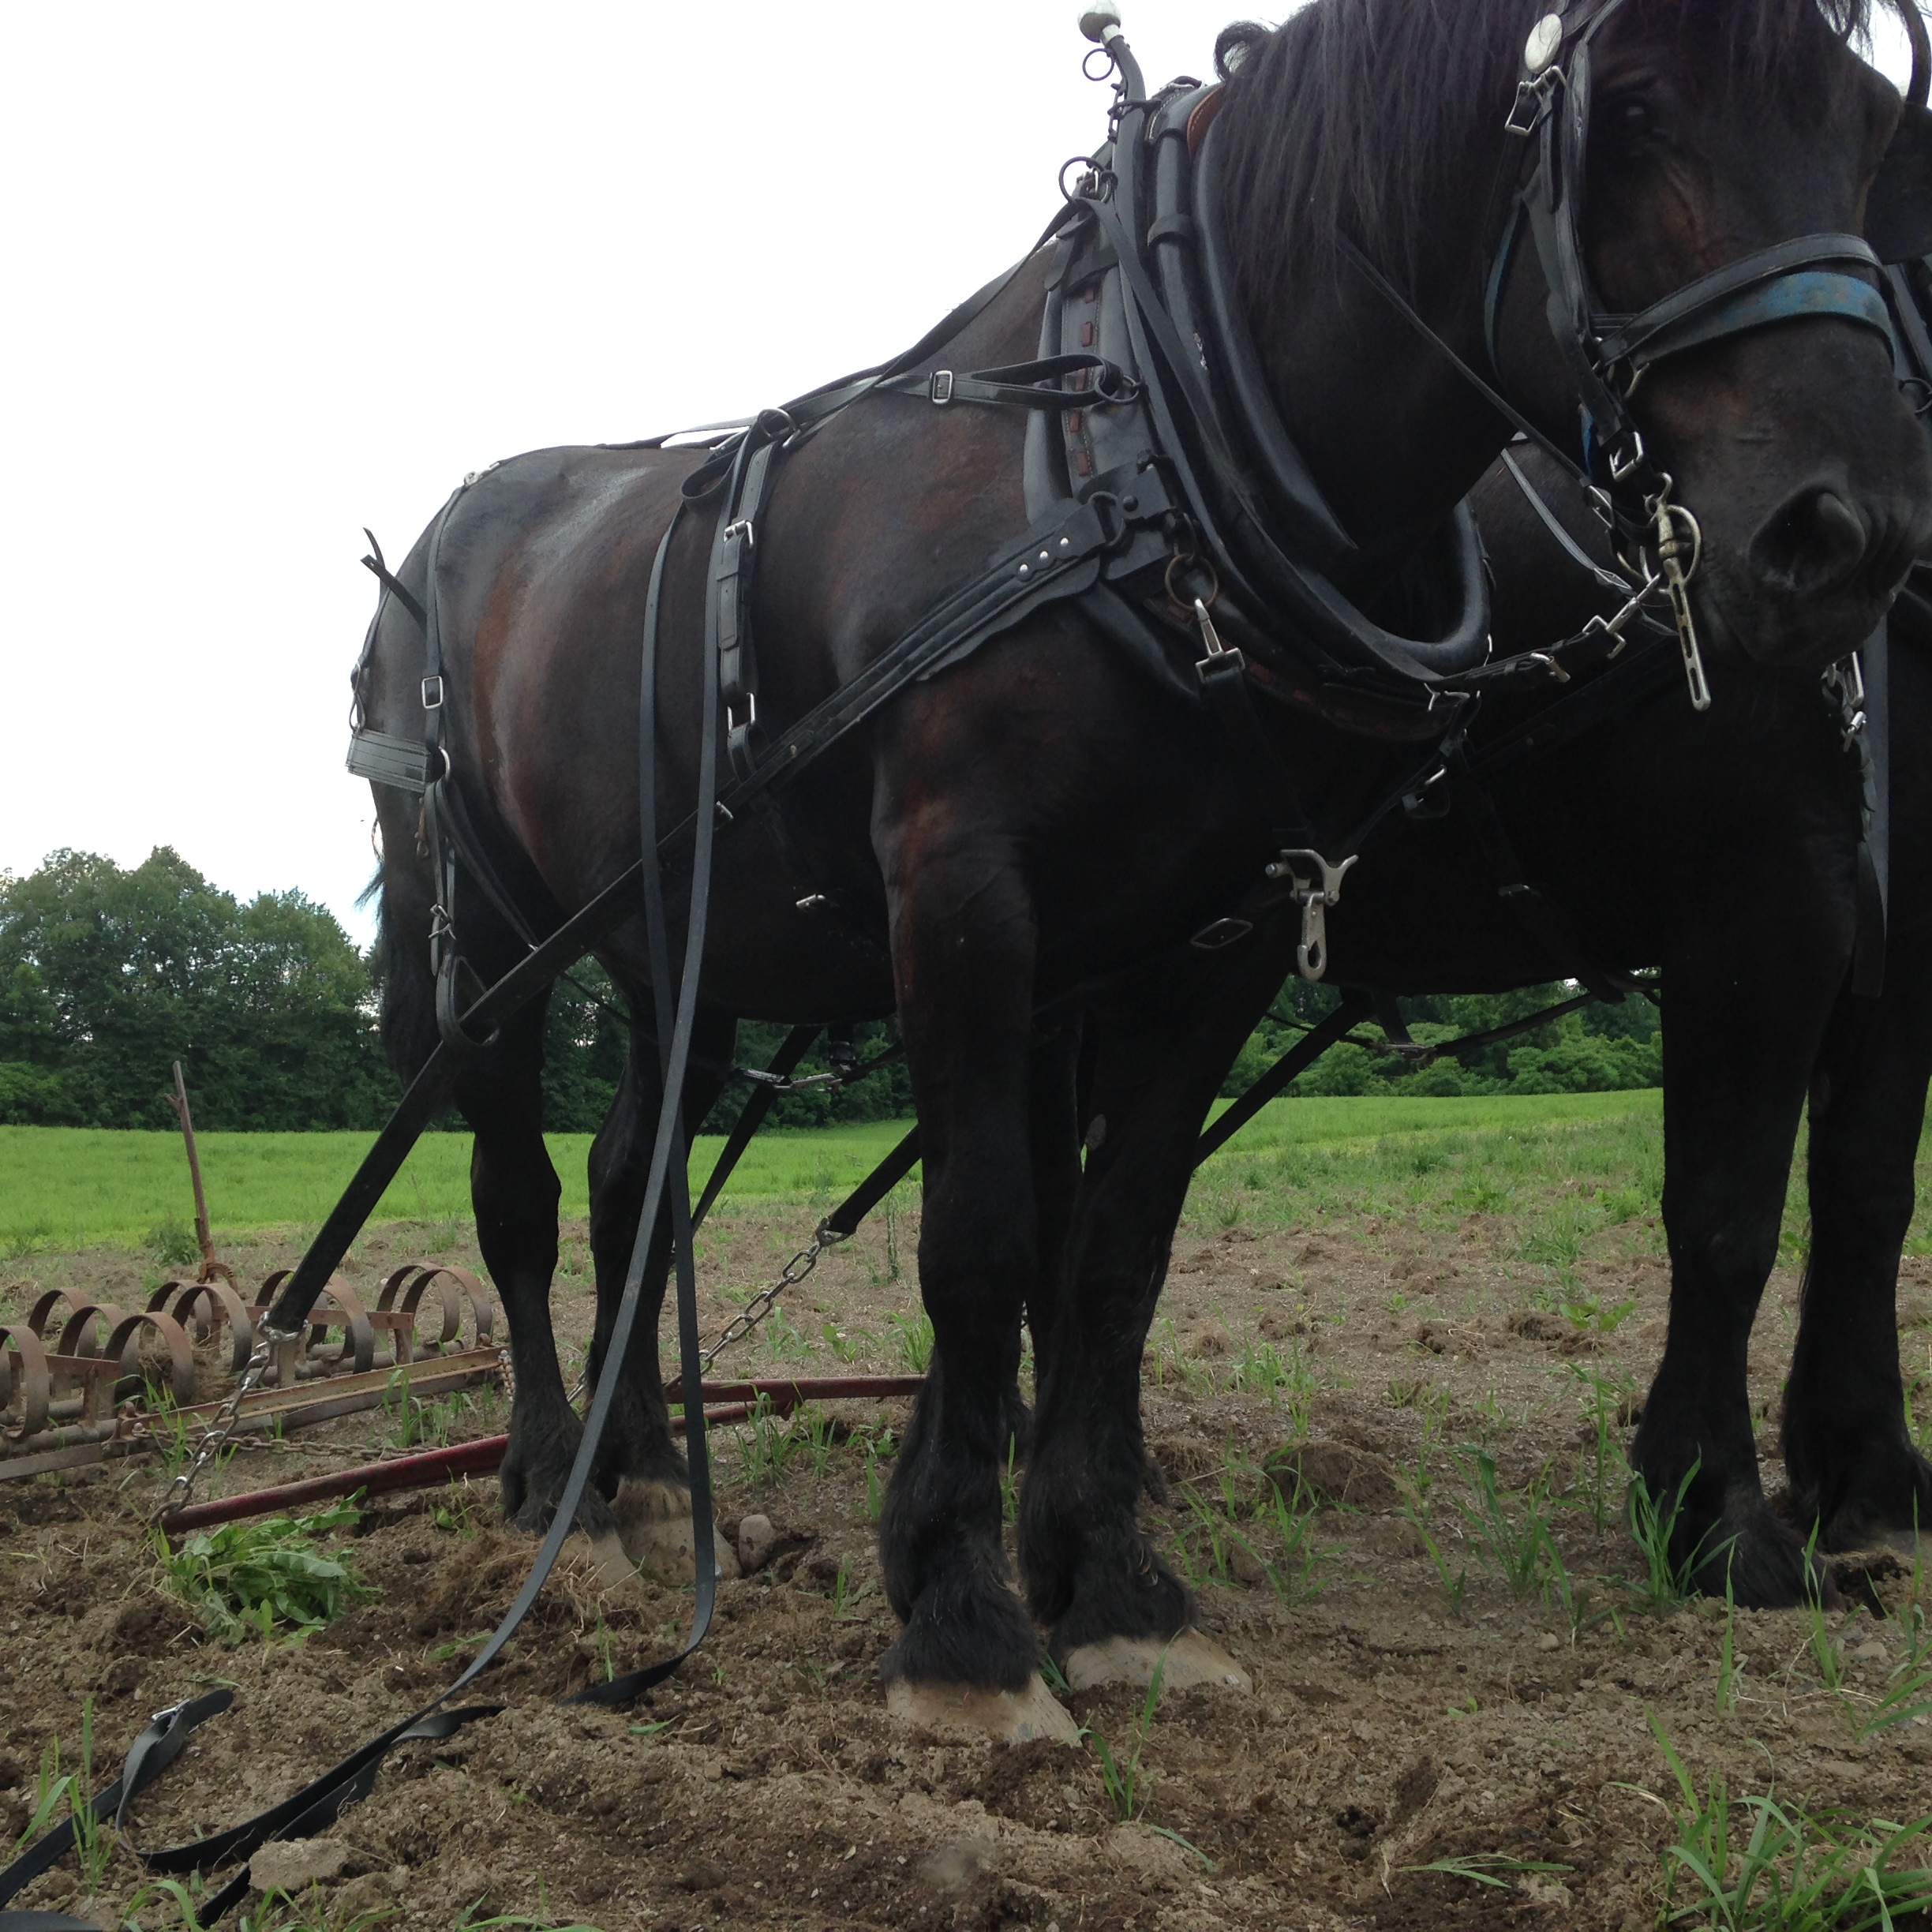 team of black Percheron mares — Pat and Pearl (Credit: Lala Niemetz)